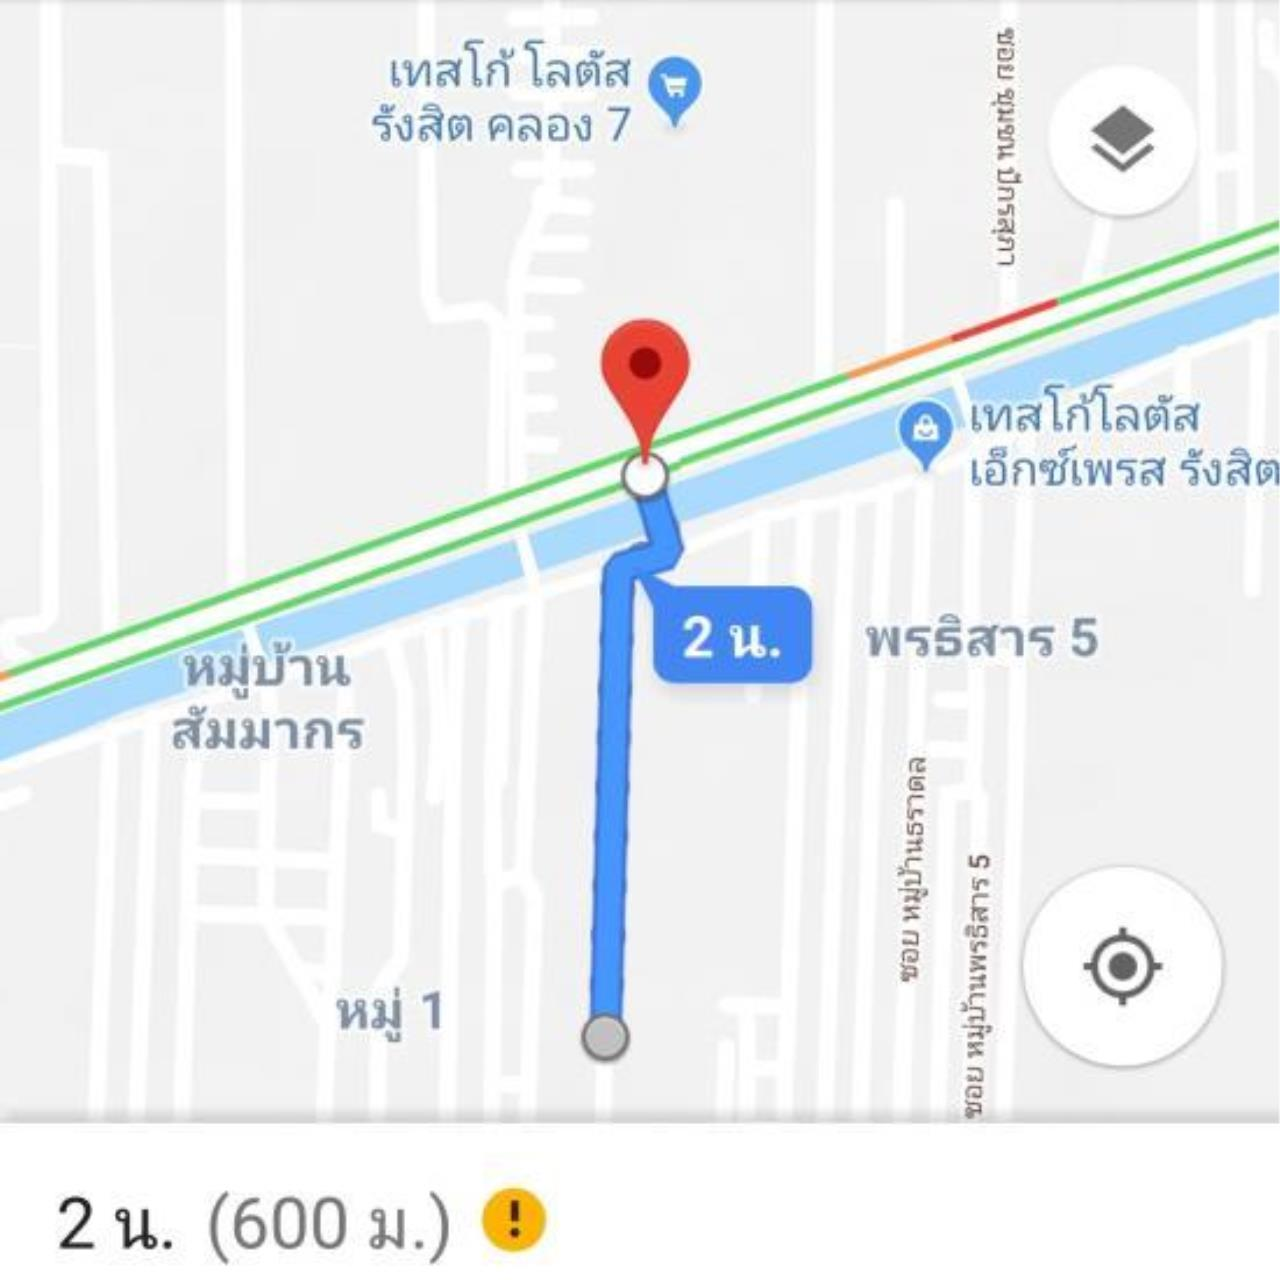 The Agent Property Agency's Land for sale in Canal 7, adjacent to Sarasas Vipi Rangsit, Lam Prakan, Pathum Thani, Rangsit-Nakhon Nayok area of 1 rai 2 ngan 6 sqw. Good location, community, market and factory. All apartments in the dorm. 12